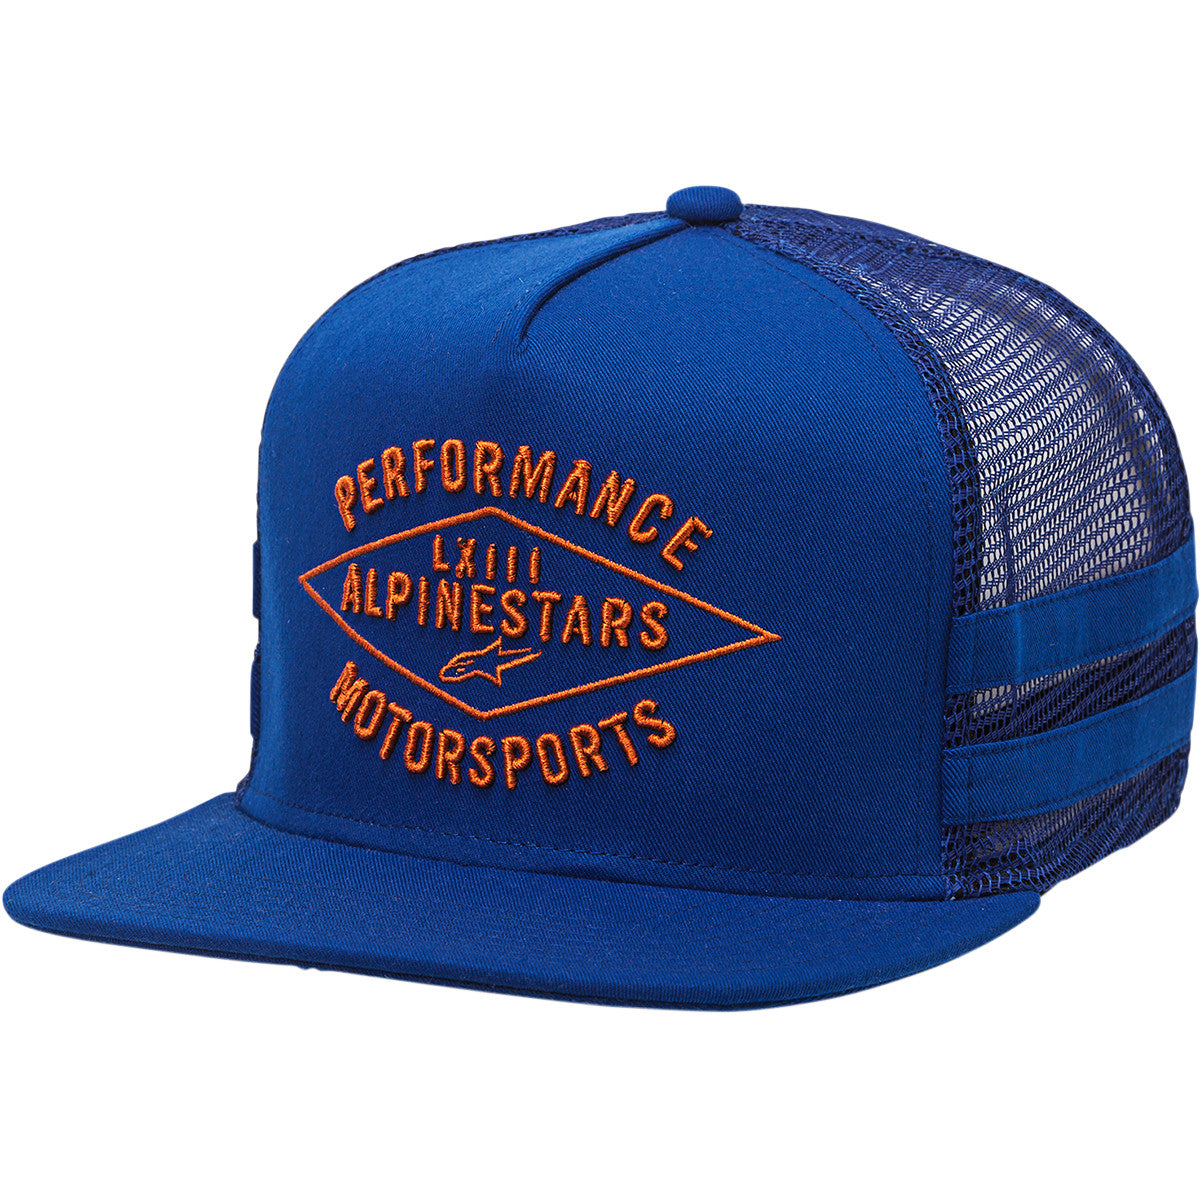 Alpinestars Hats Ride Flat, Logistics, Smart, Expedition, Ride Stealth, Ageless Flat